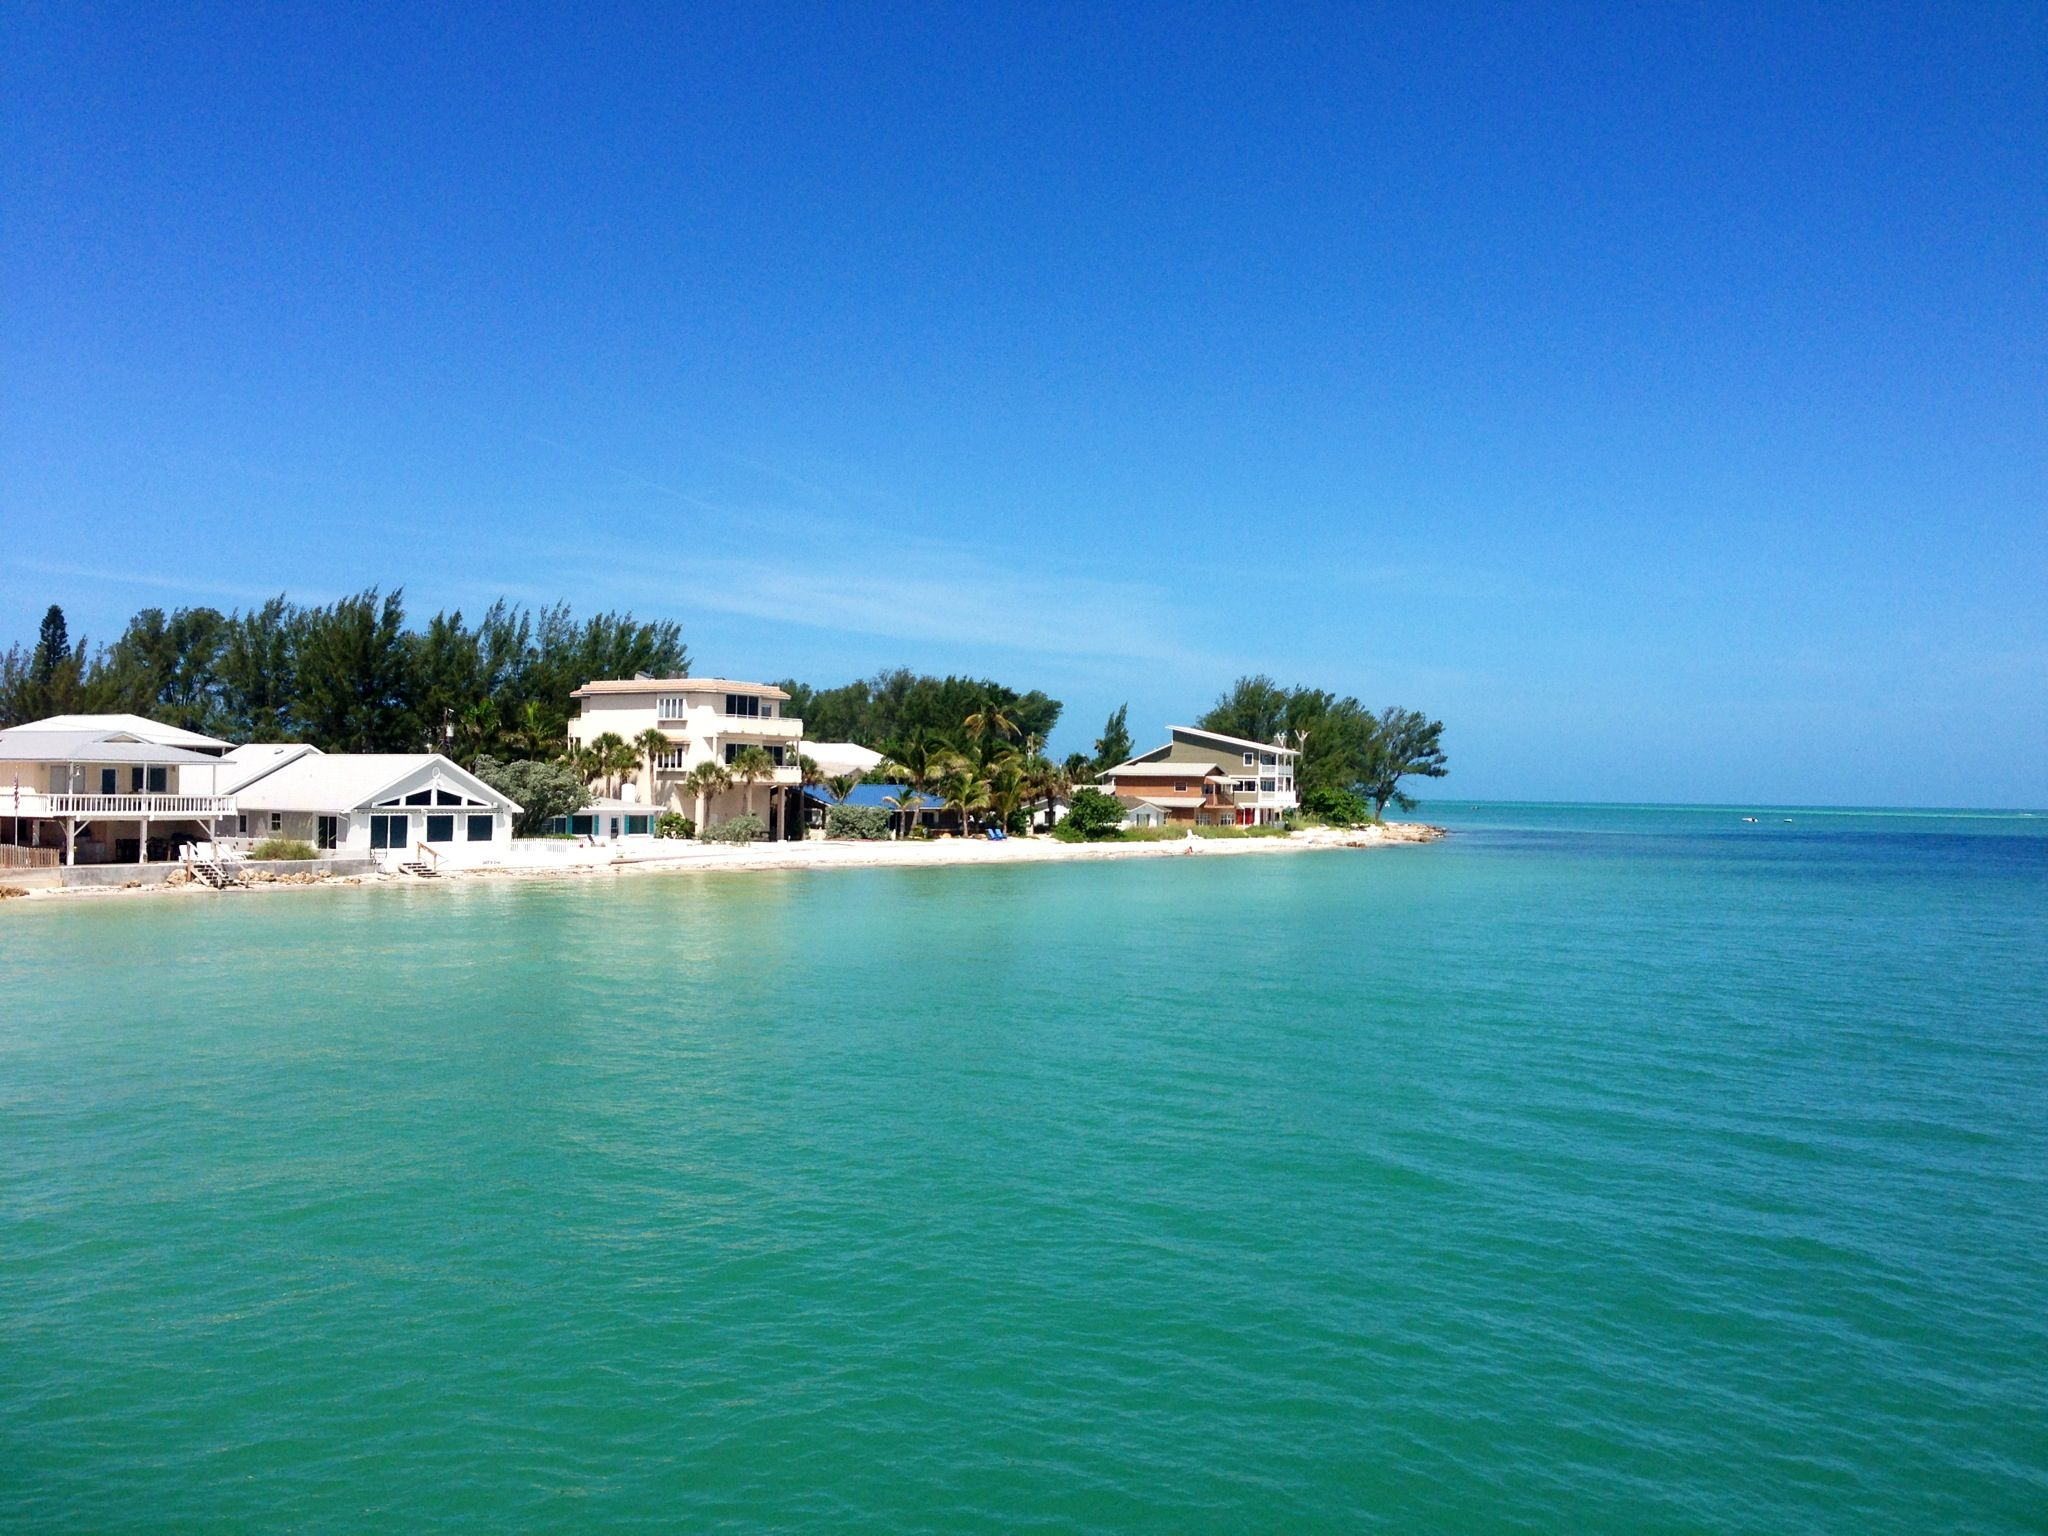 Anna Maria Island Florida From The Rod And Reel Pier It Looked Just Like This When We Were Ther Anna Maria Island Florida Summer Traditions Favorite Vacation